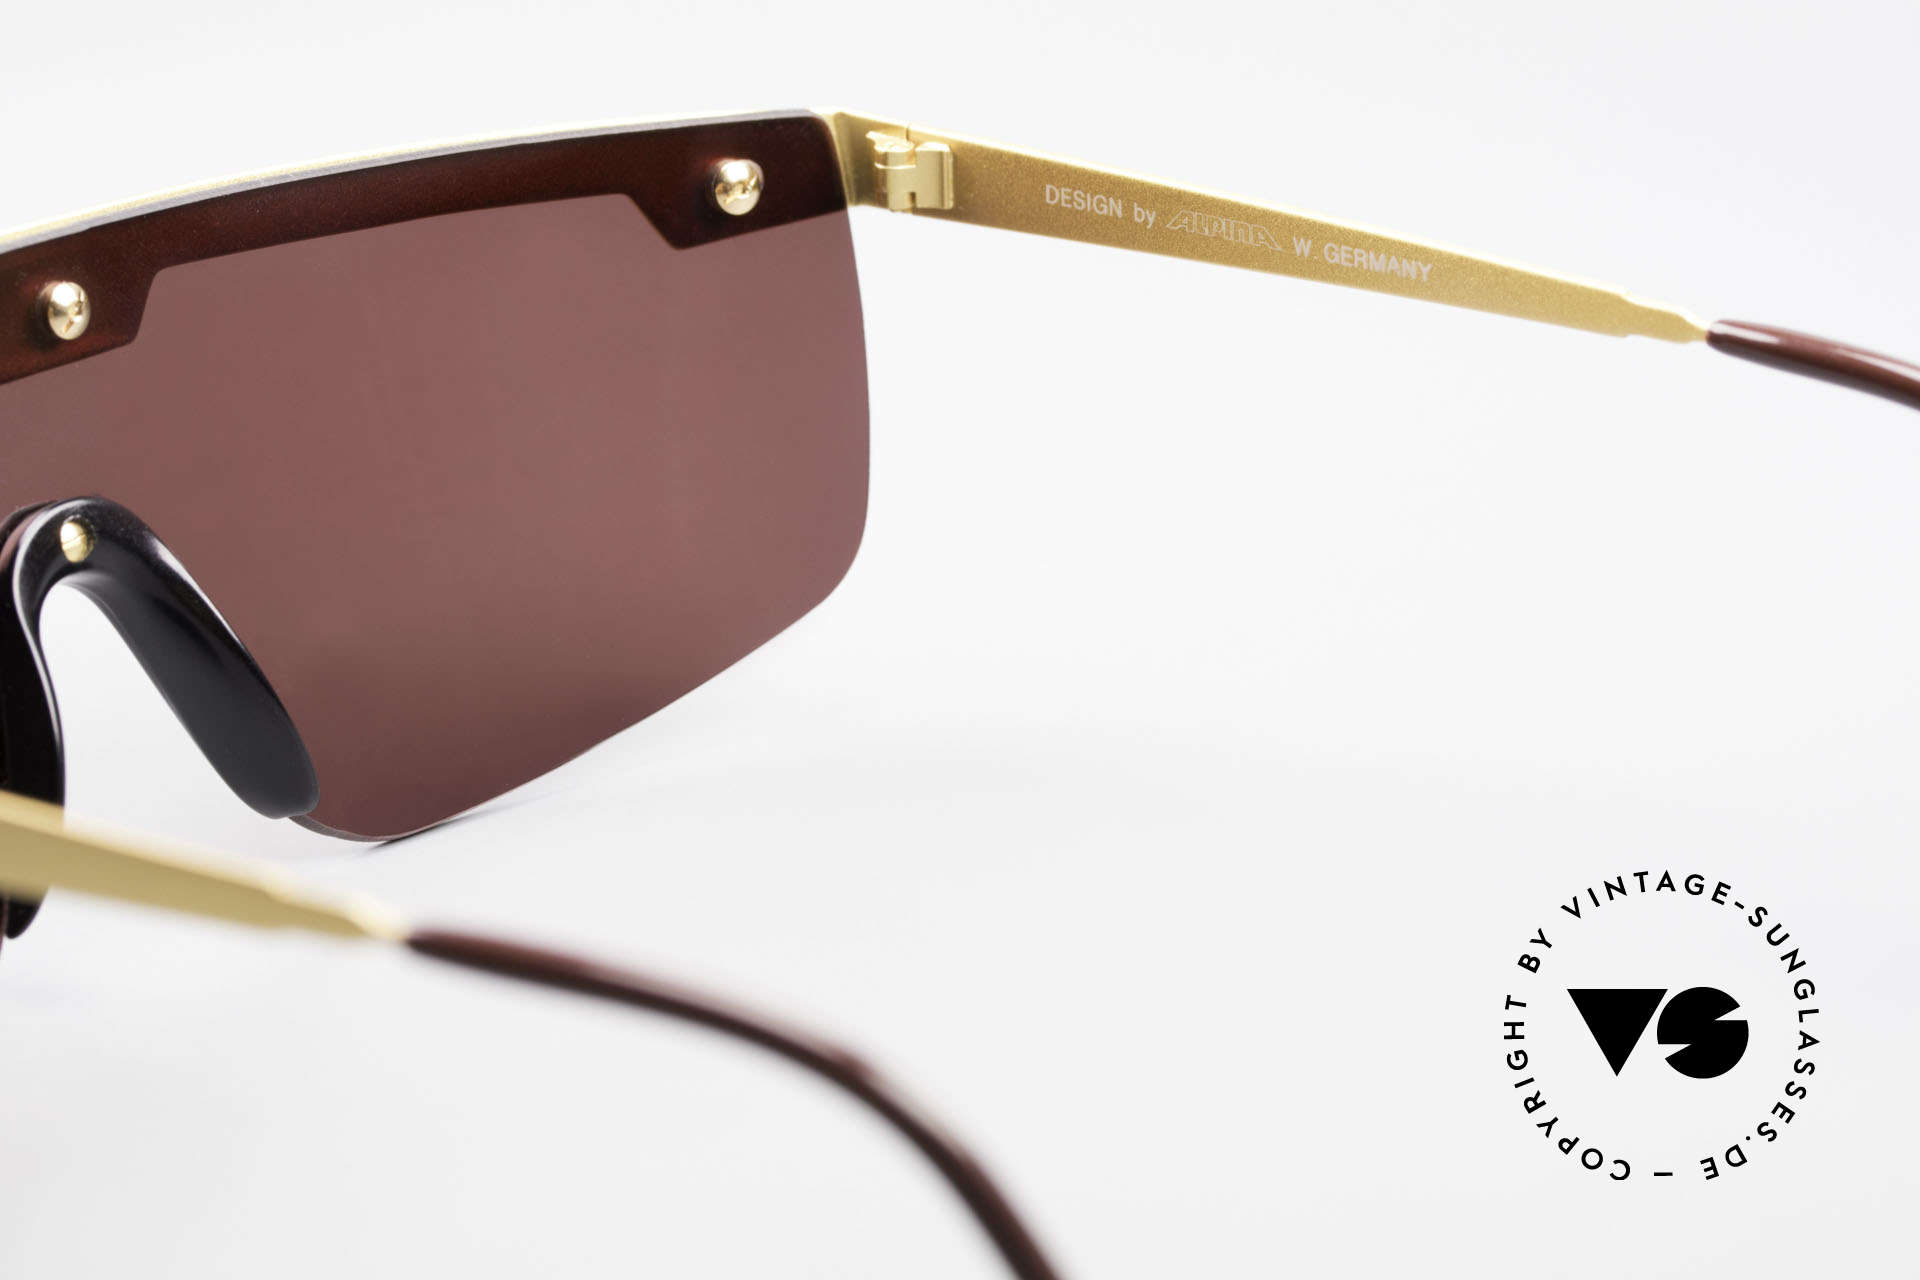 Alpina M57 Vintage Shades Panorama View, Size: extra large, Made for Men and Women